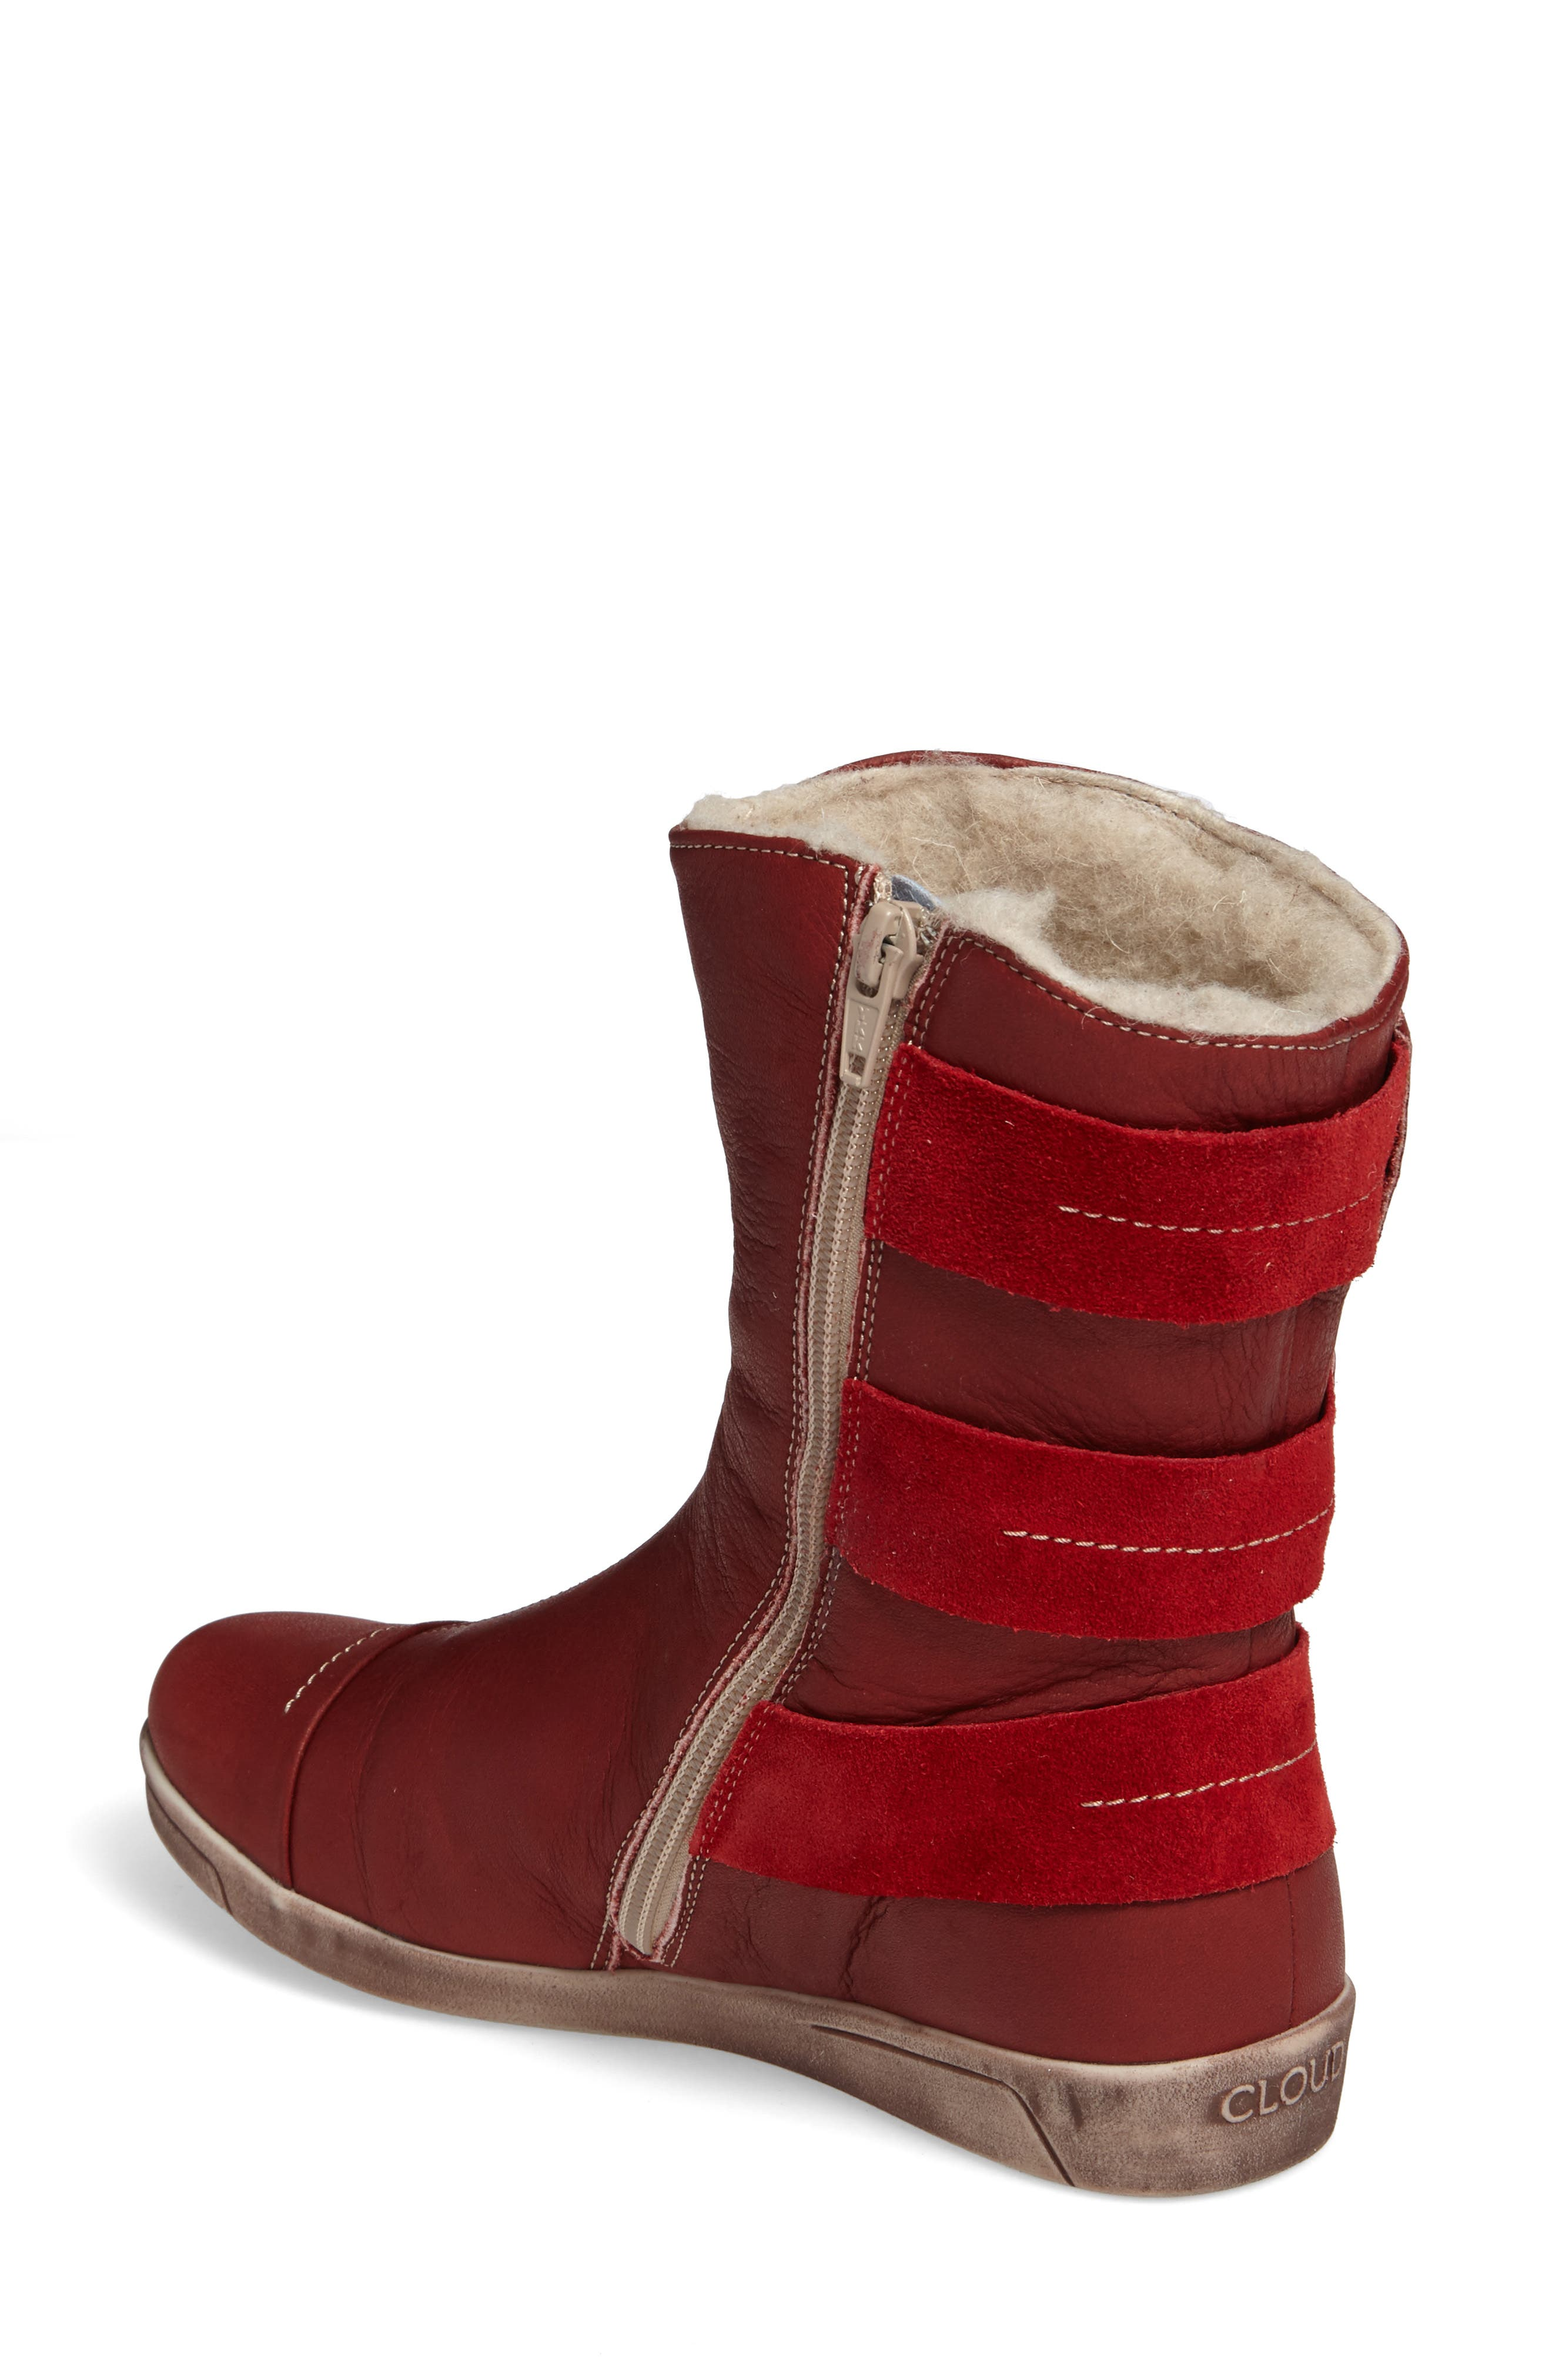 Amber Wool Lined Bootie,                             Alternate thumbnail 2, color,                             Red Leather